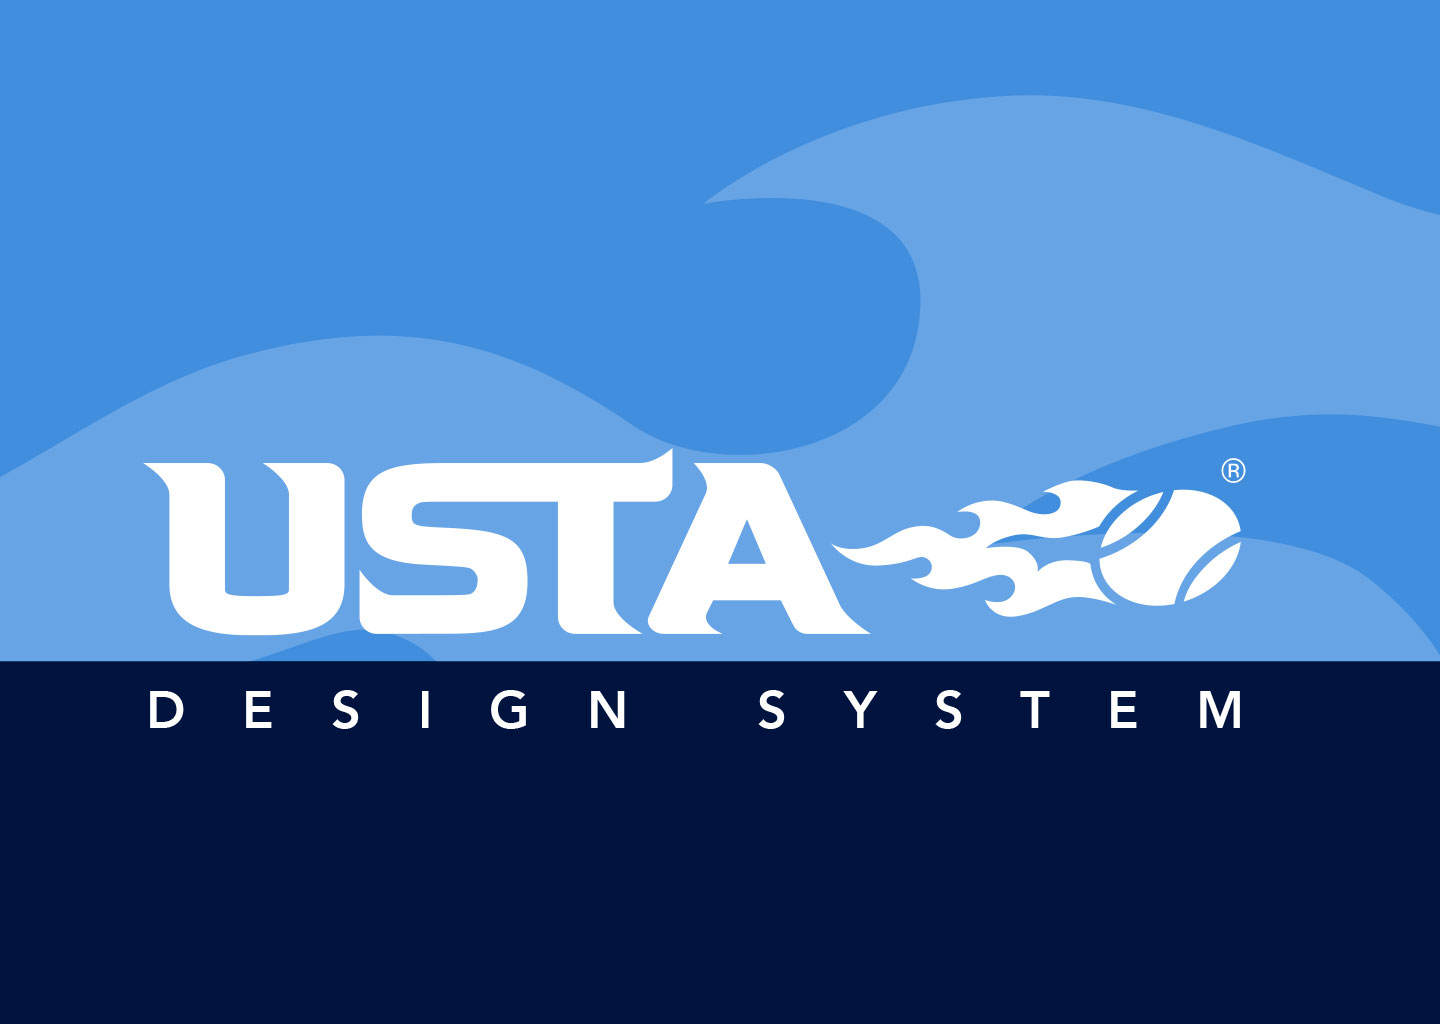 Unites States Tennis Association - Creation of a scalable Design System and its elements for a national scale organization